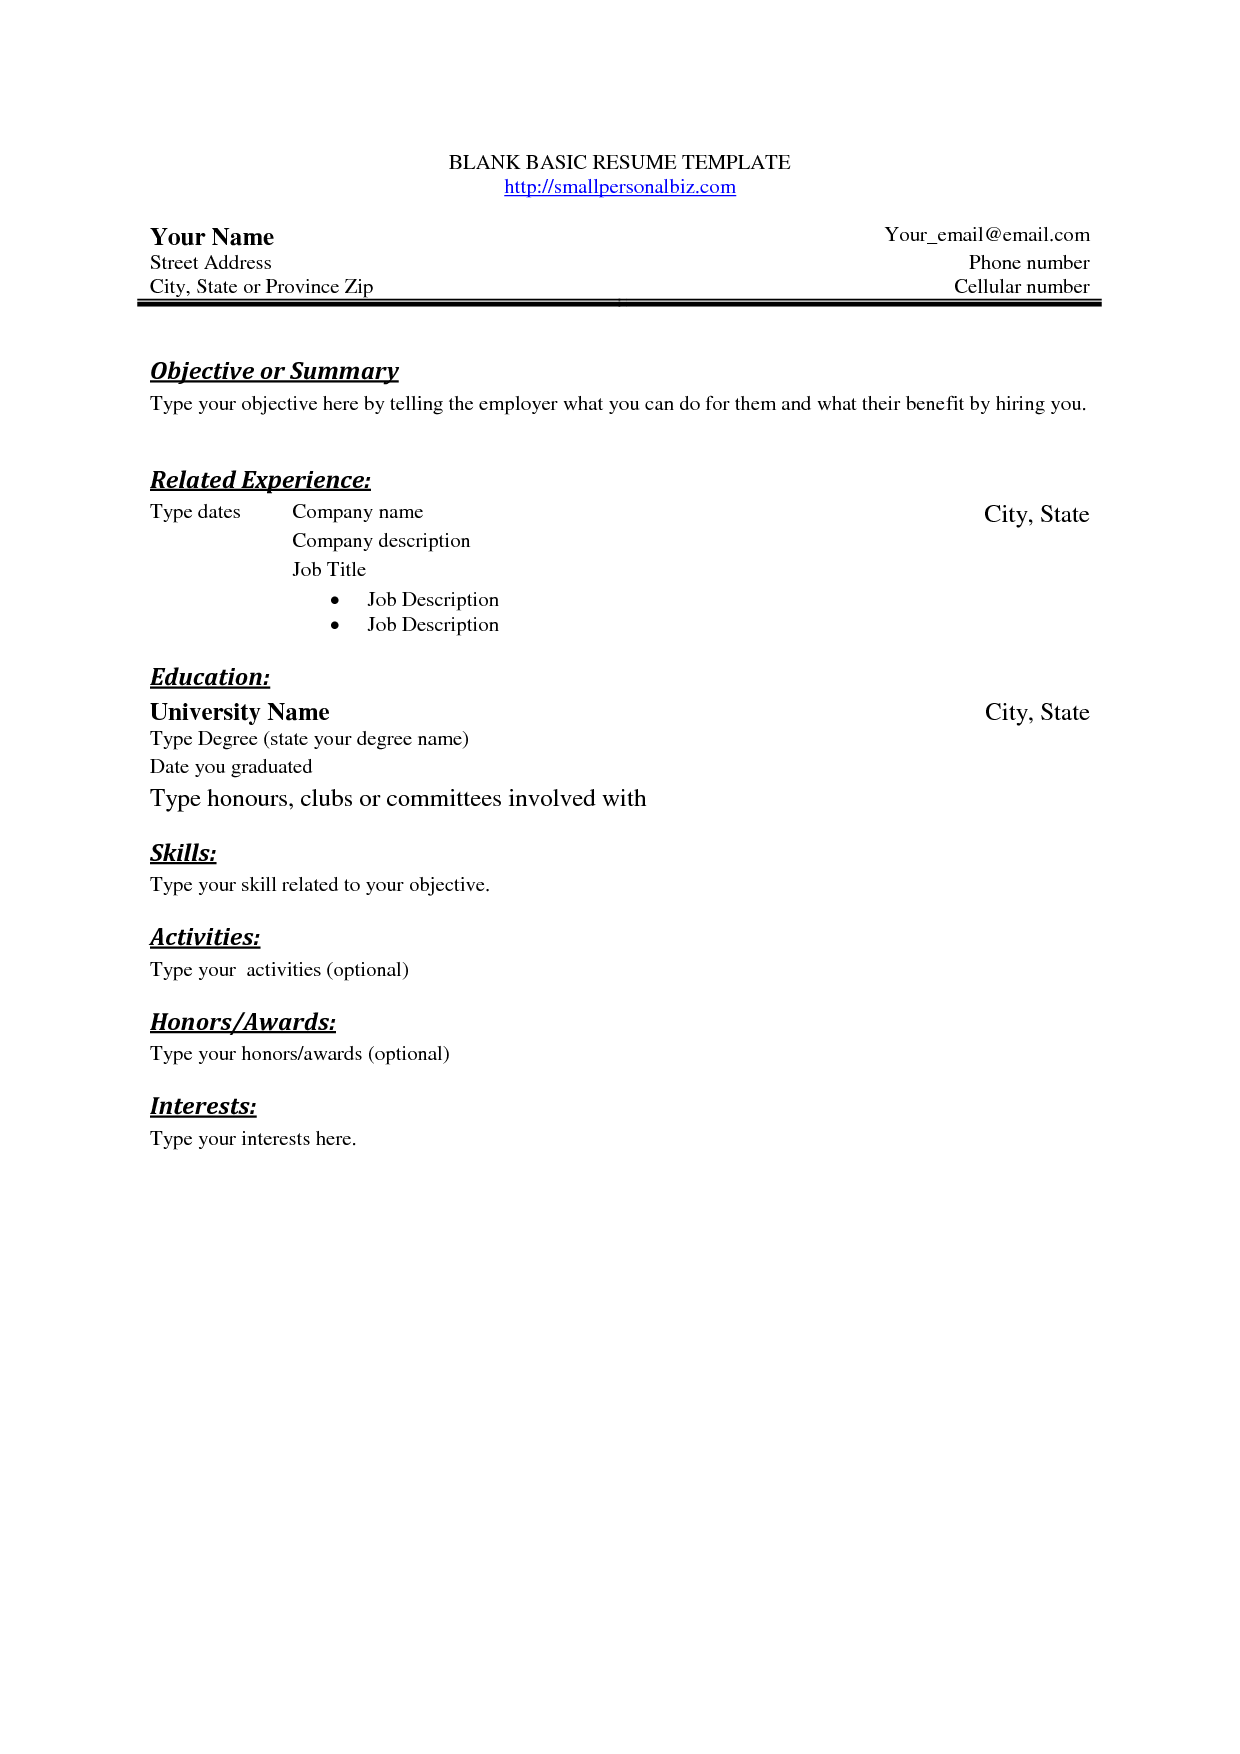 Free Basic Blank Resume Template Free Basic Sample Resume Resume Outline Basic Resume Simple Resume Examples